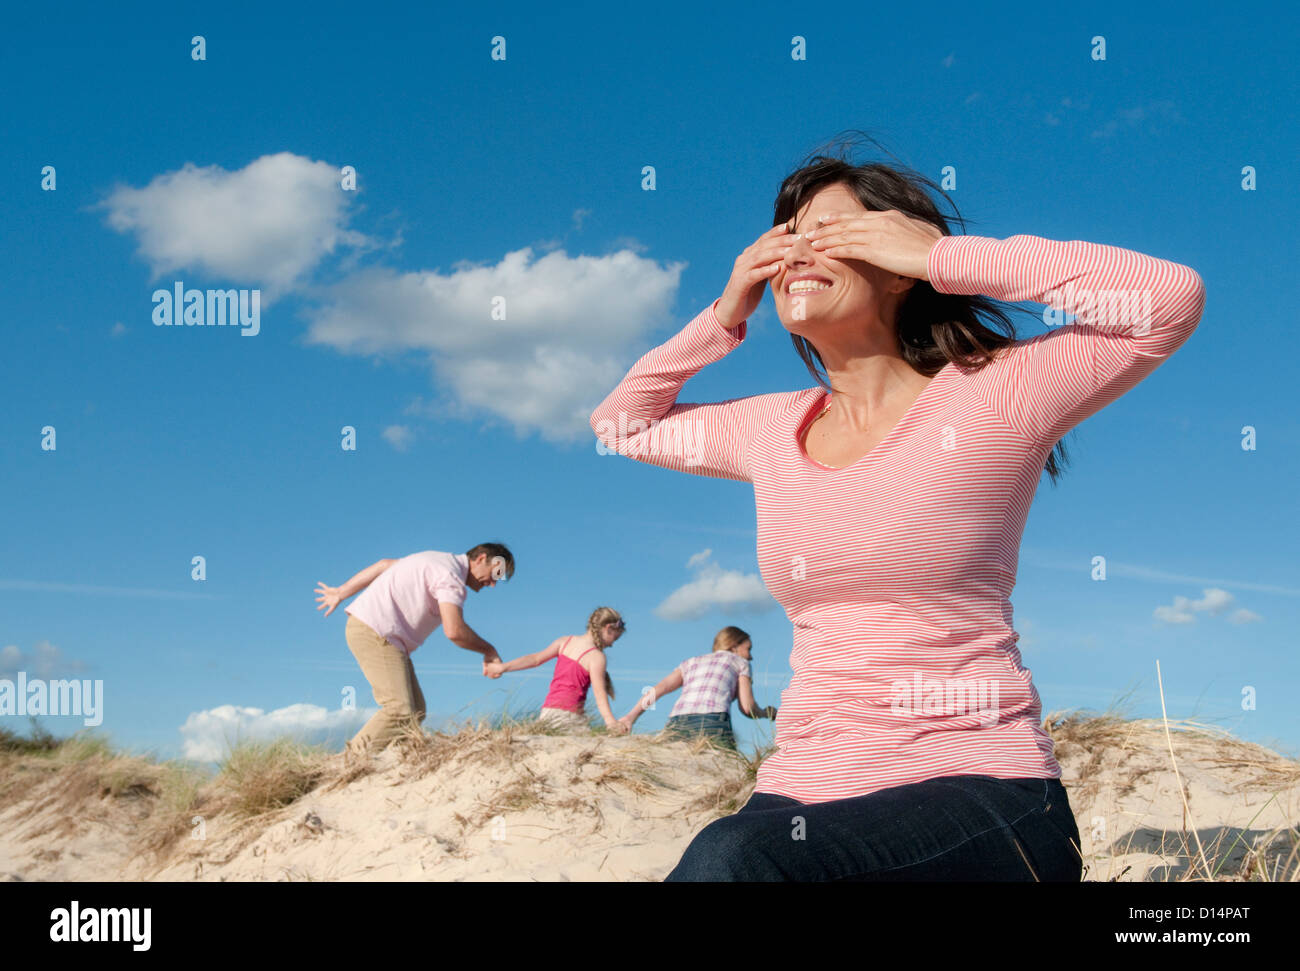 Family playing hide and seek outdoors - Stock Image